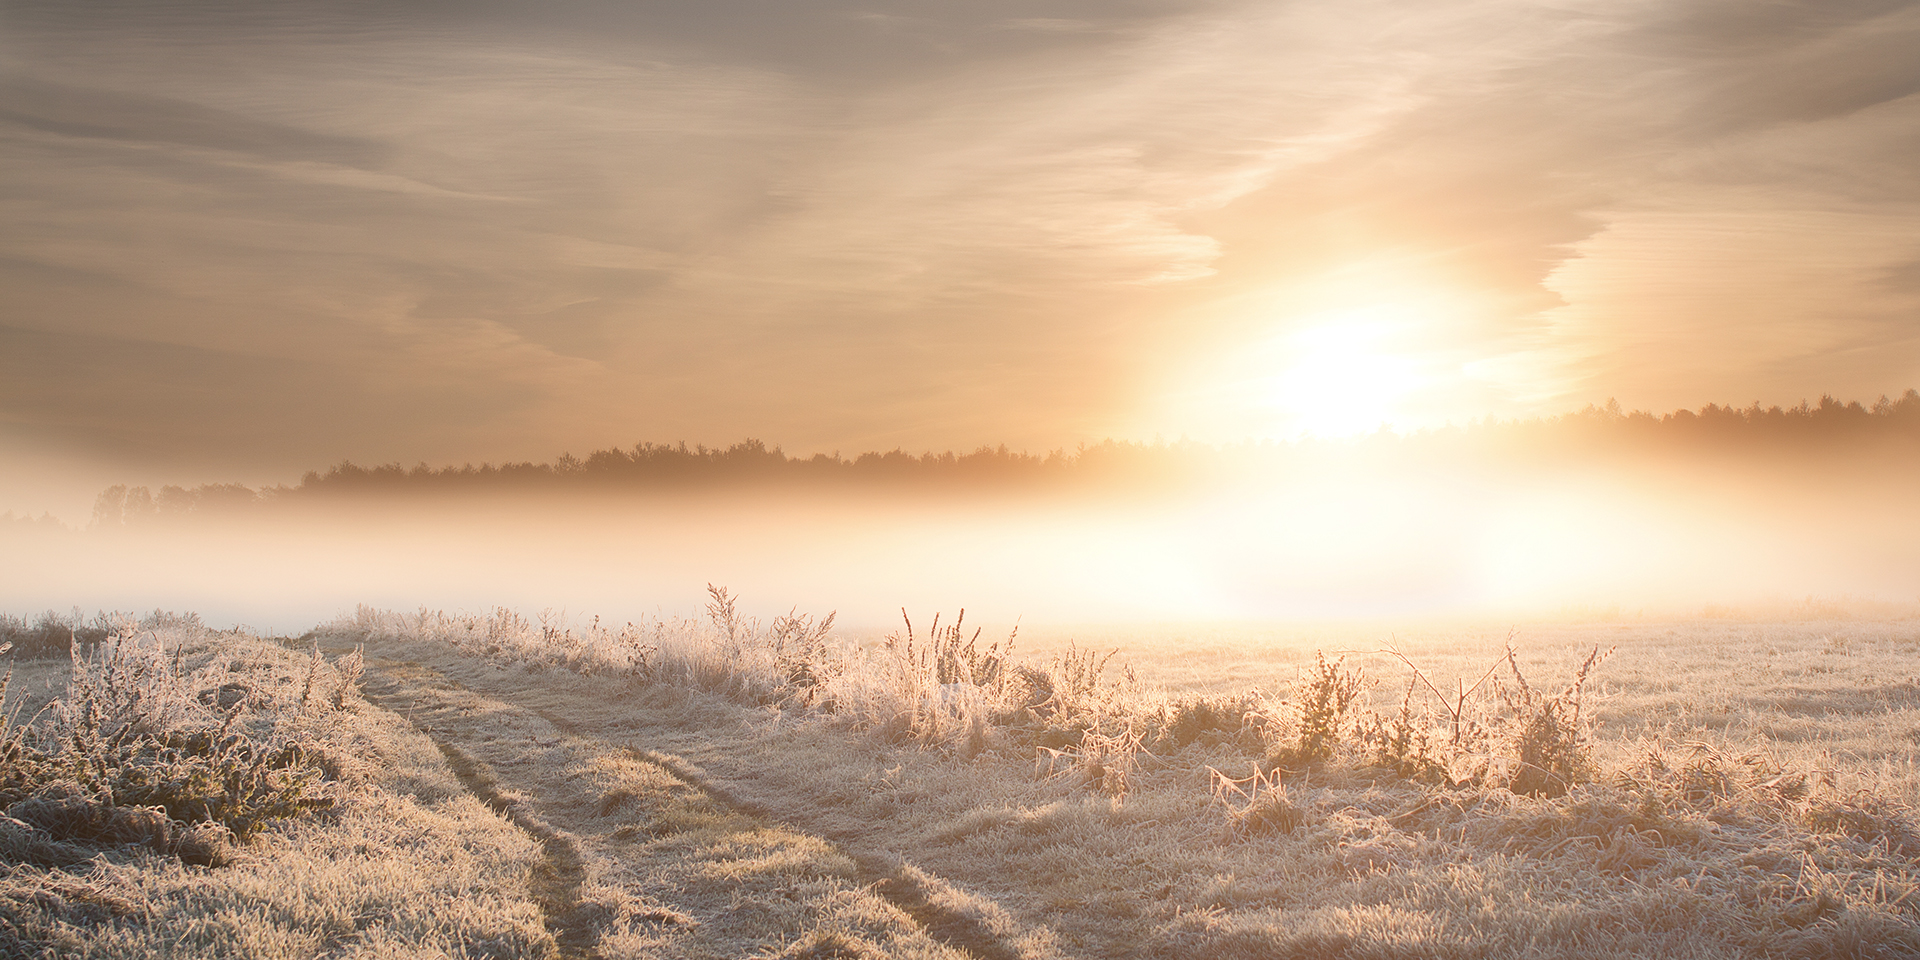 frost-covering-a-sunny-field.jpg